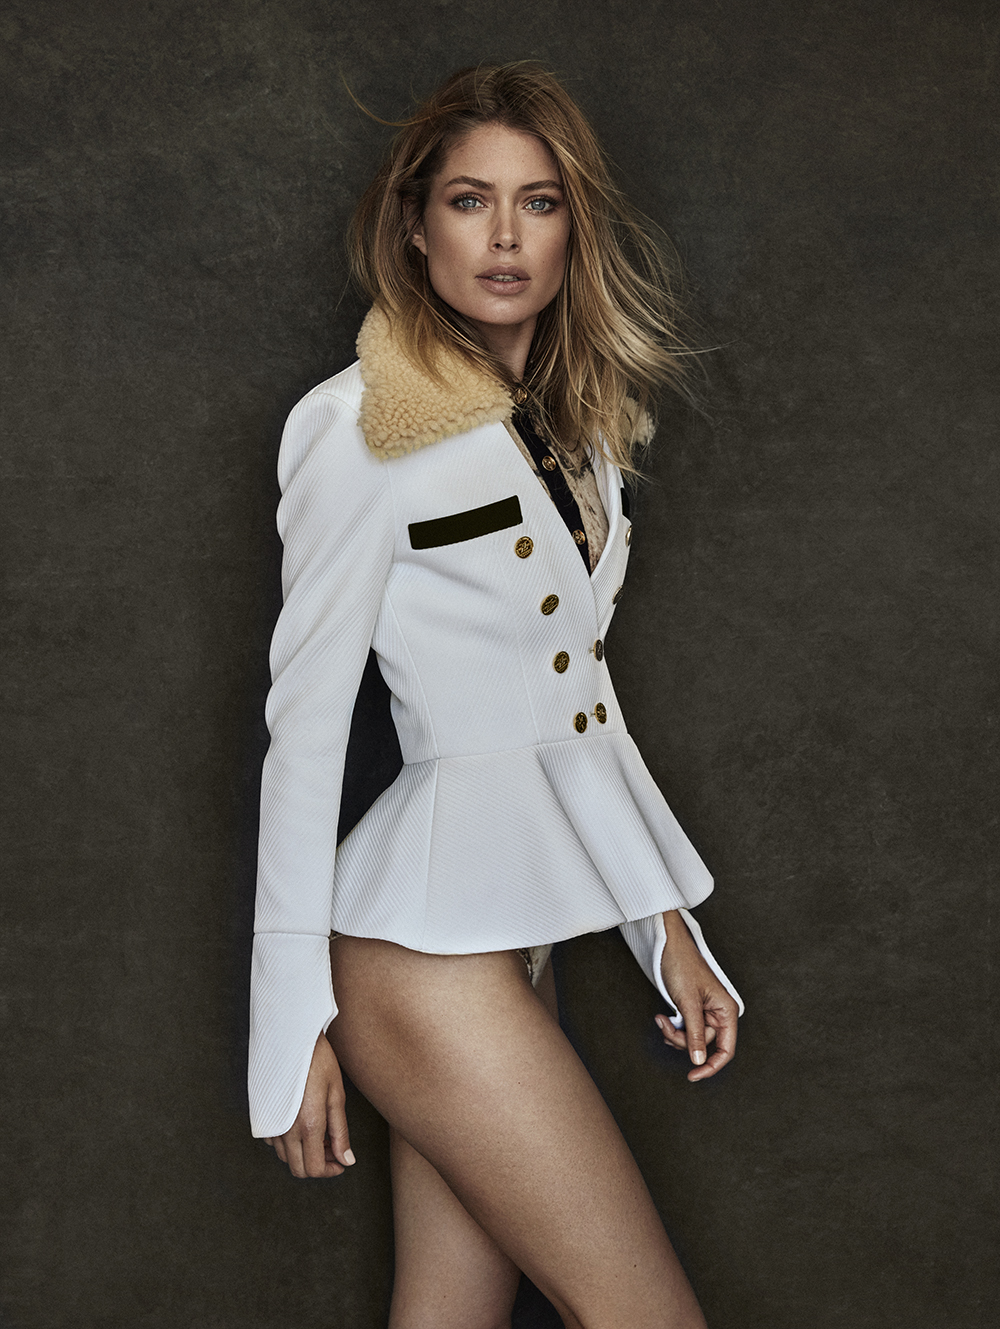 DOUTZEN KROES FOR TELVA MAGAZINE